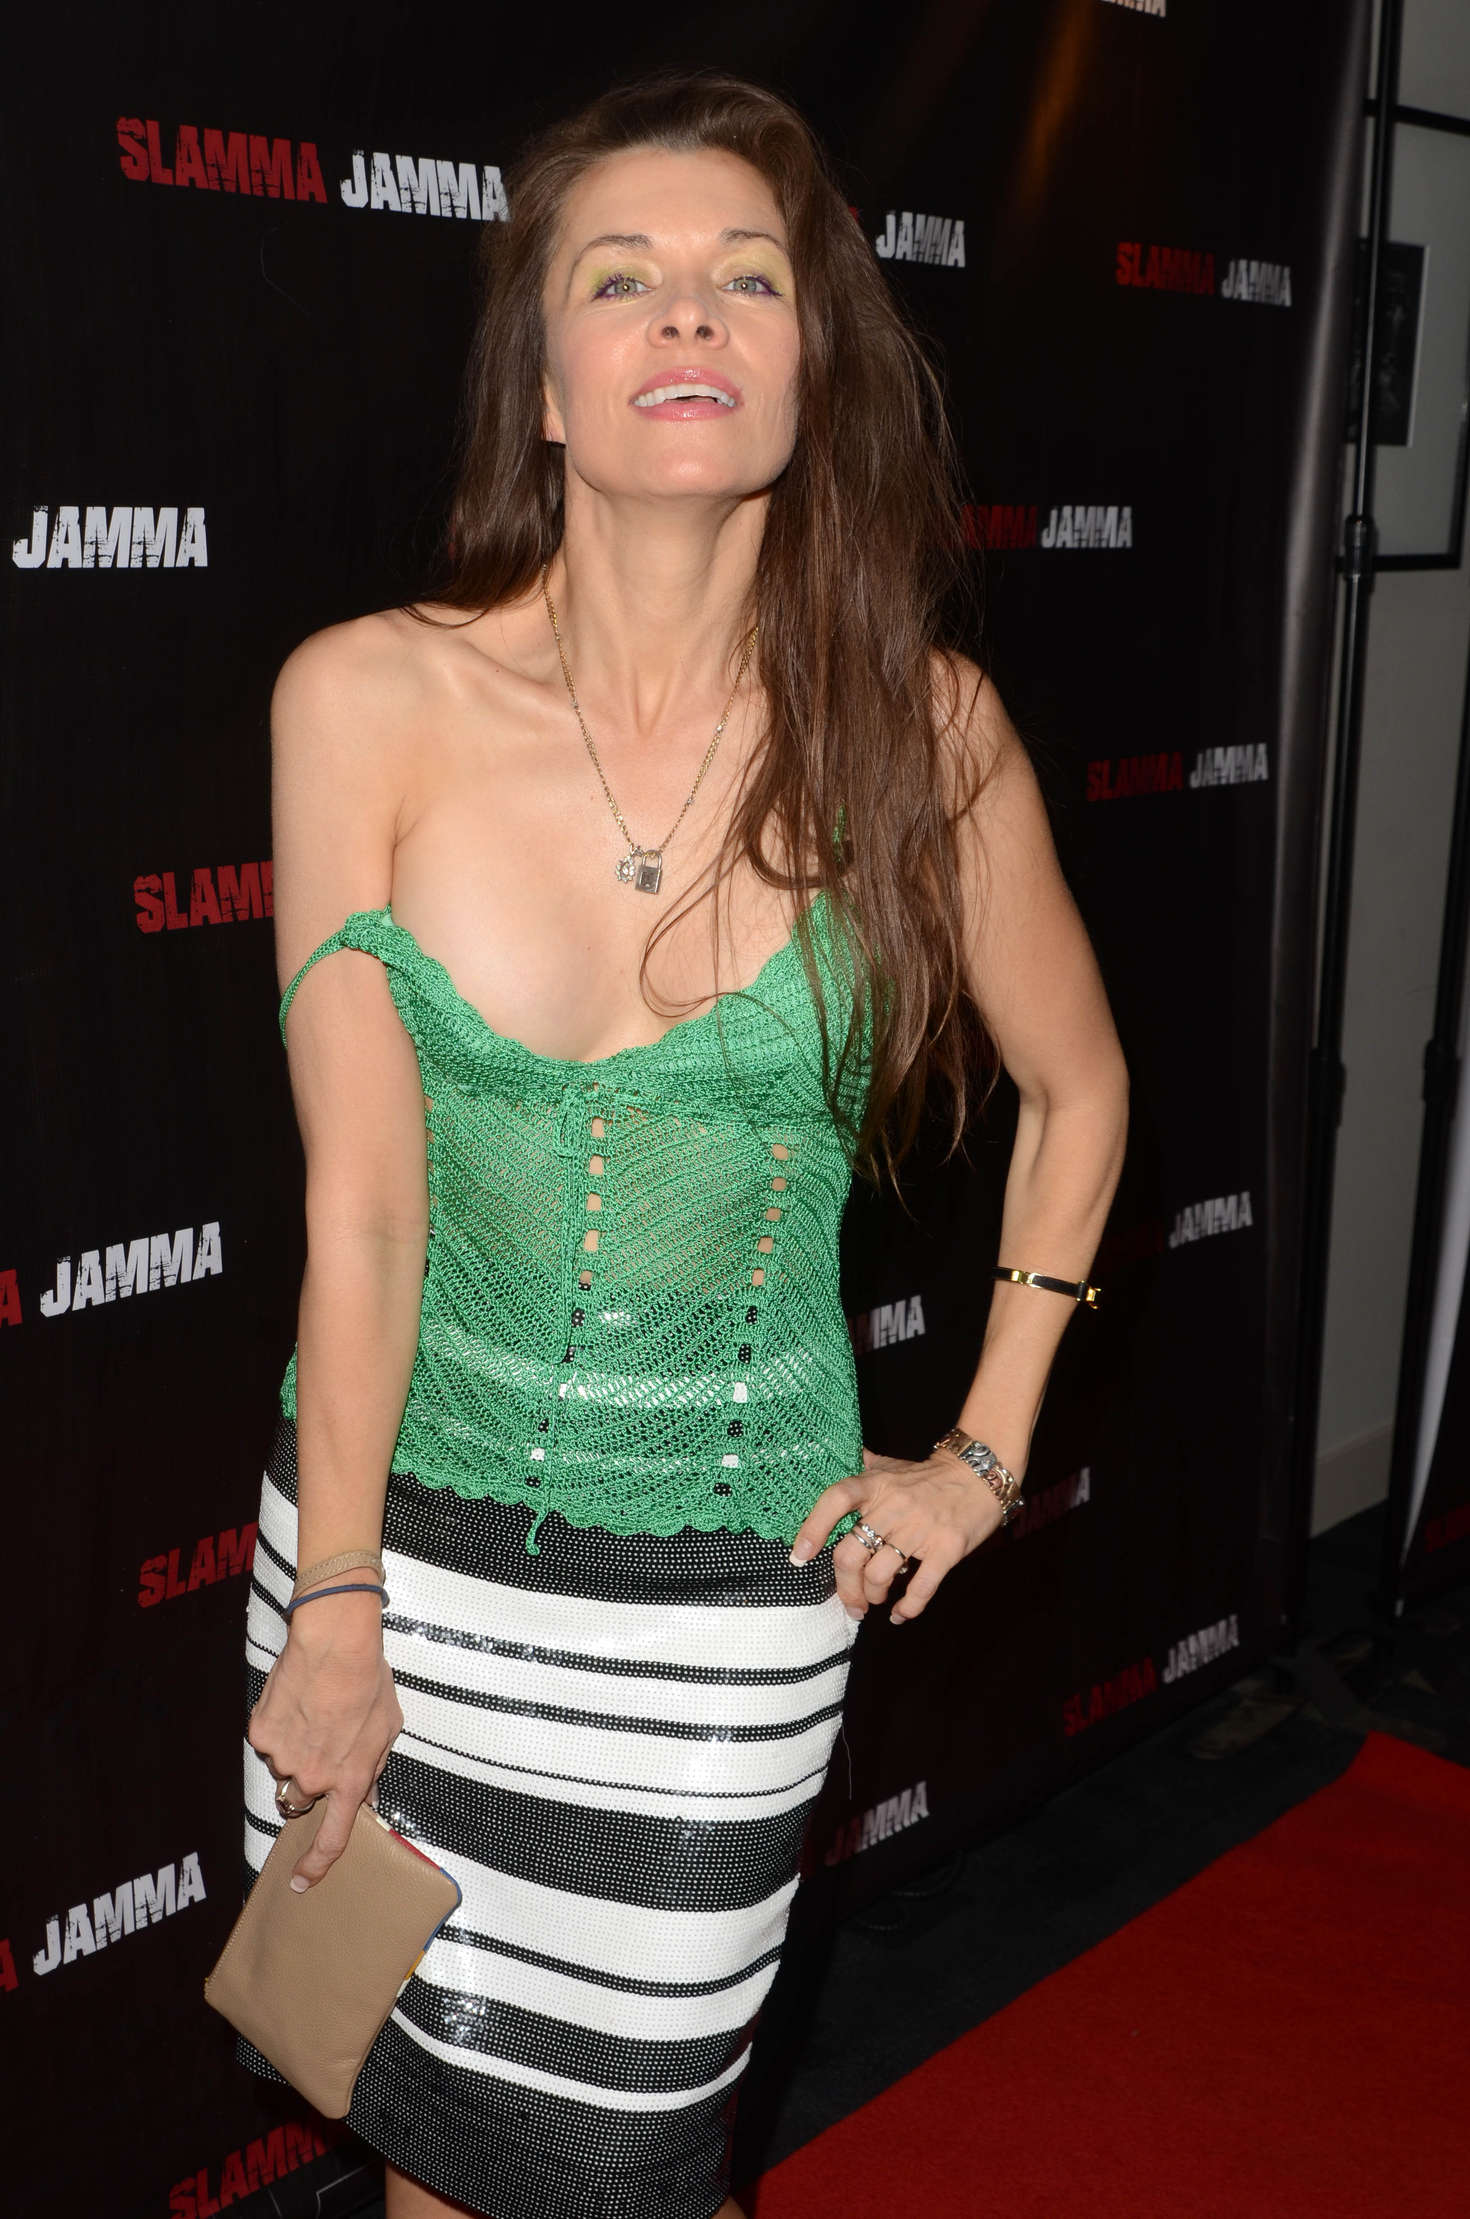 Alicia Arden Slamma Jamma Screening In Los Angeles